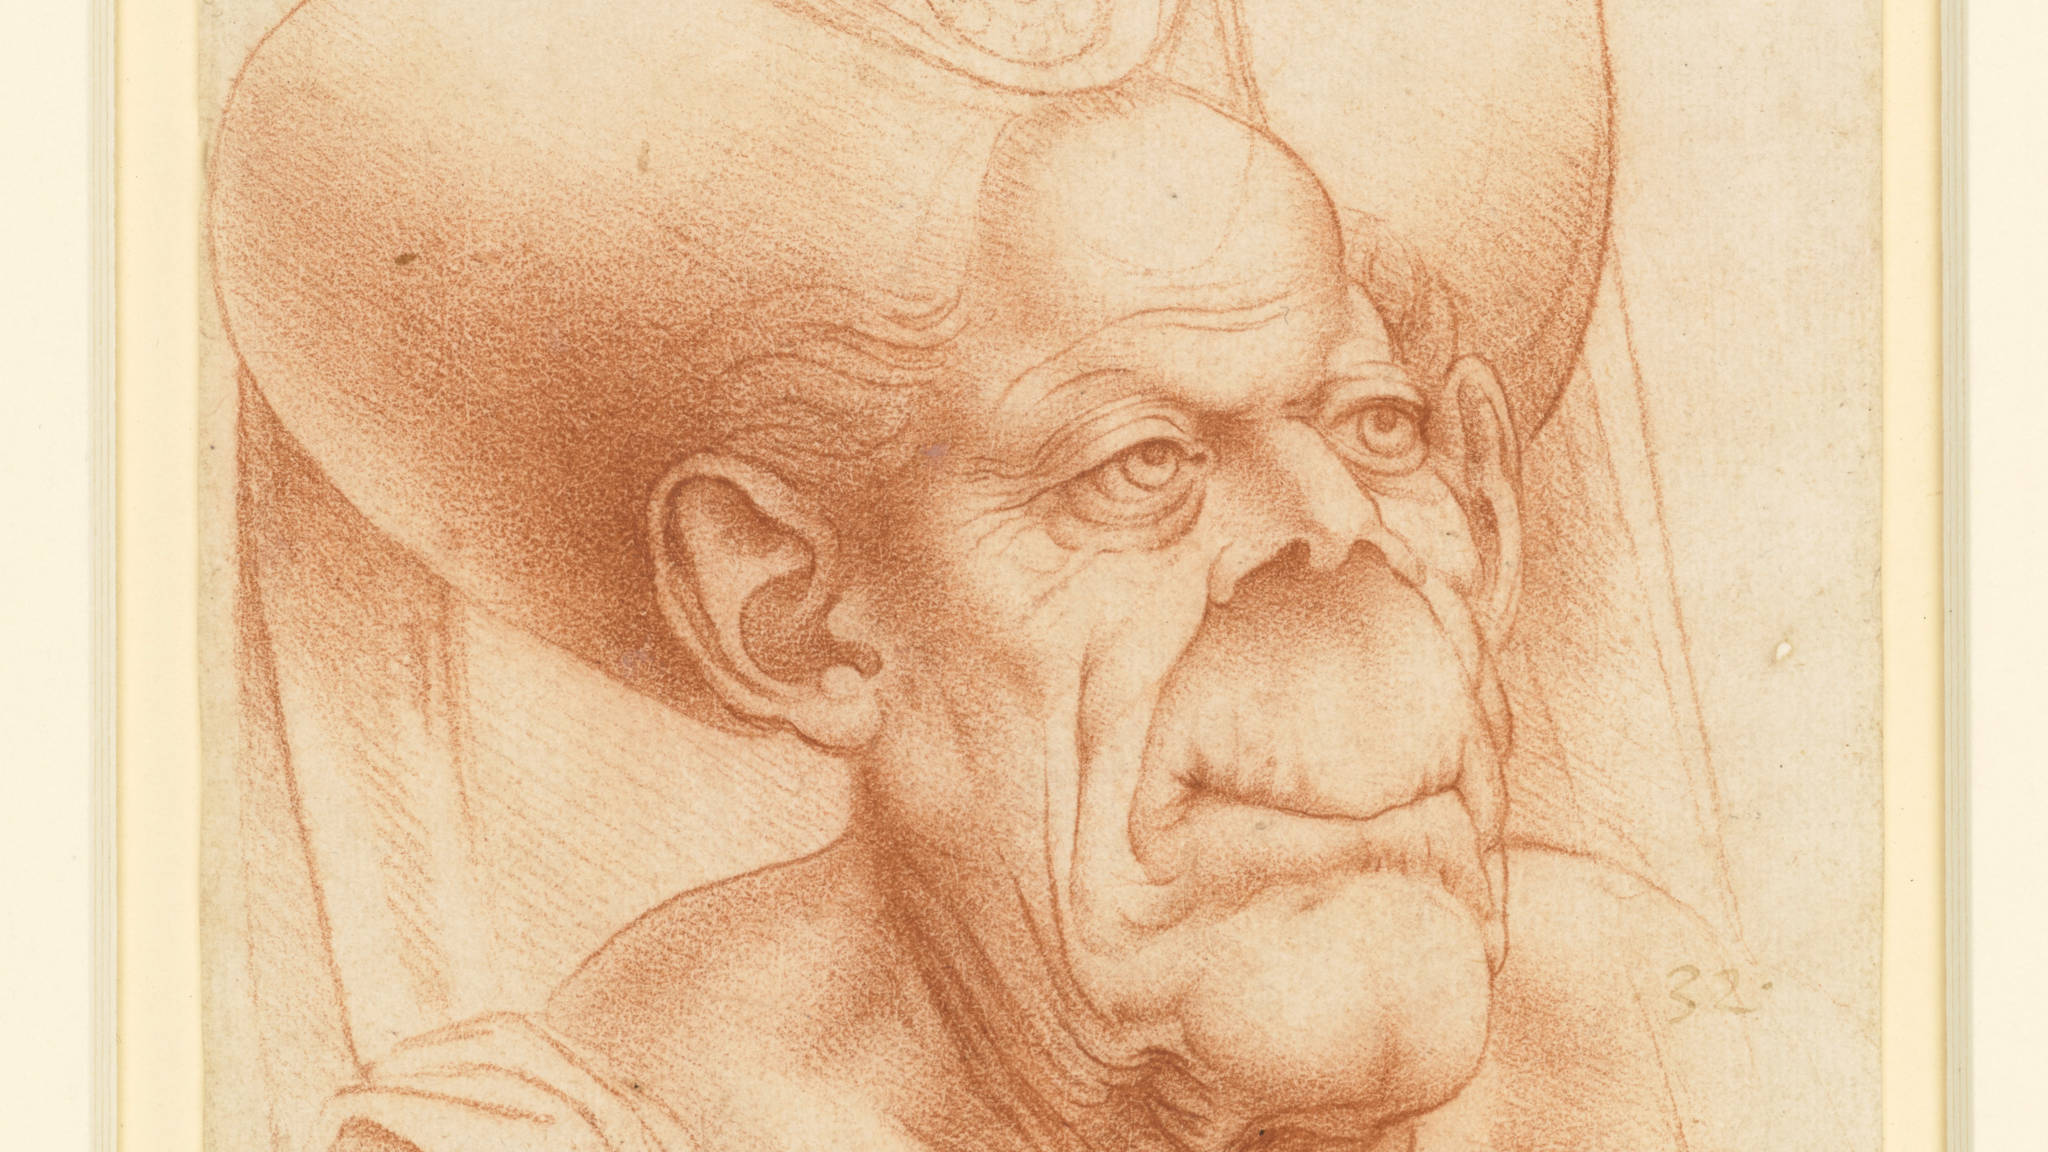 Caricature by Leonardo da Vinci. Royal Collection Trust / © Her Majesty Queen Elizabeth II 2018